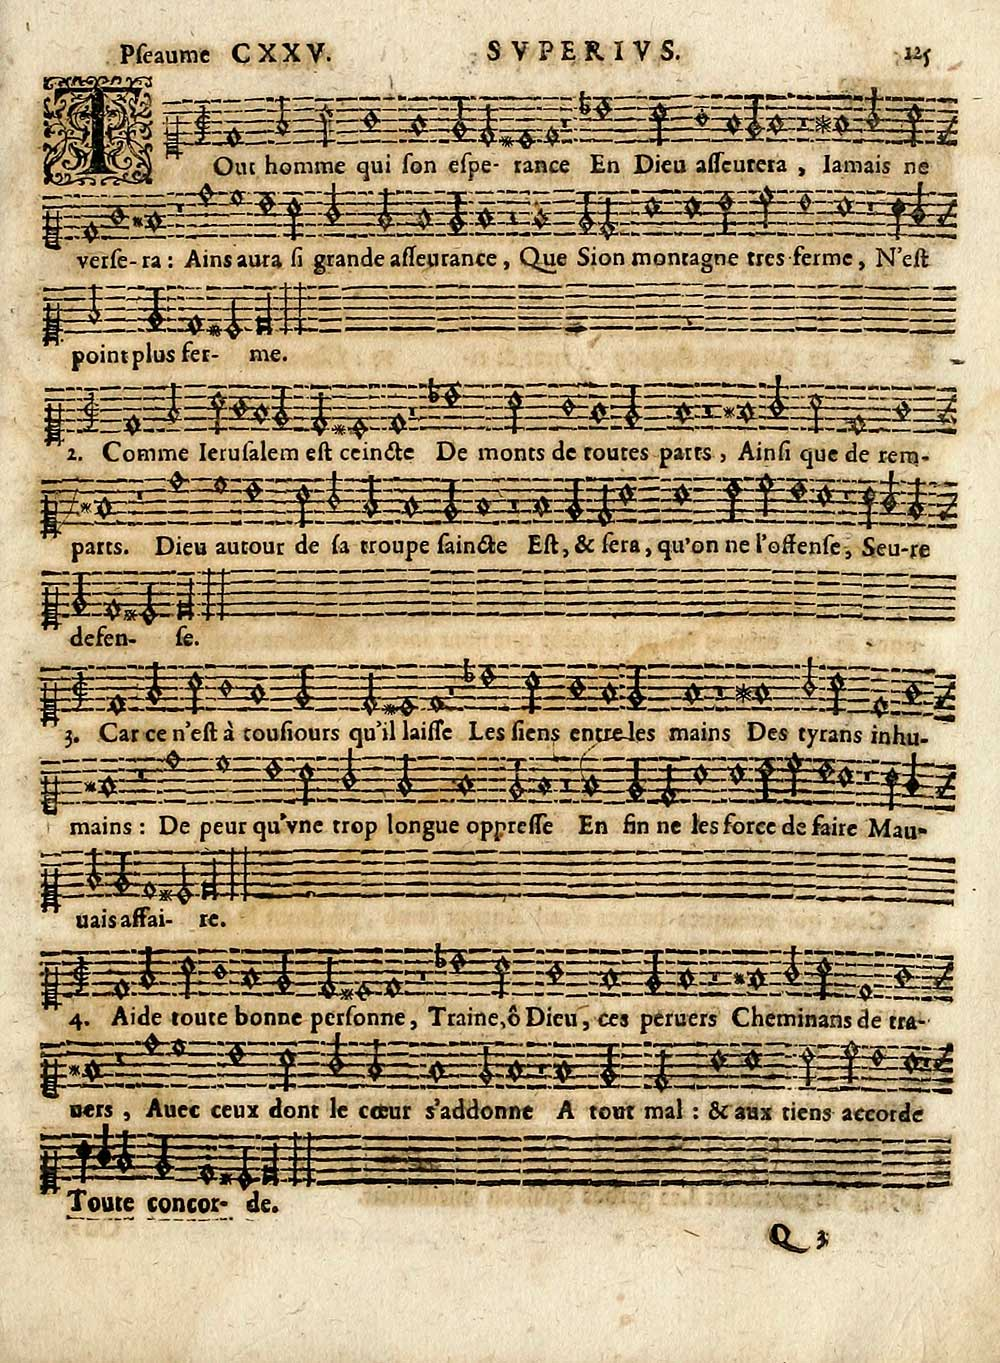 137 Page 125 Tout Homme Qui Son Esperance Inglis Collection Of Printed Music Printed Music Pseaumes De David Special Collections Of Printed Music National Library Of Scotland